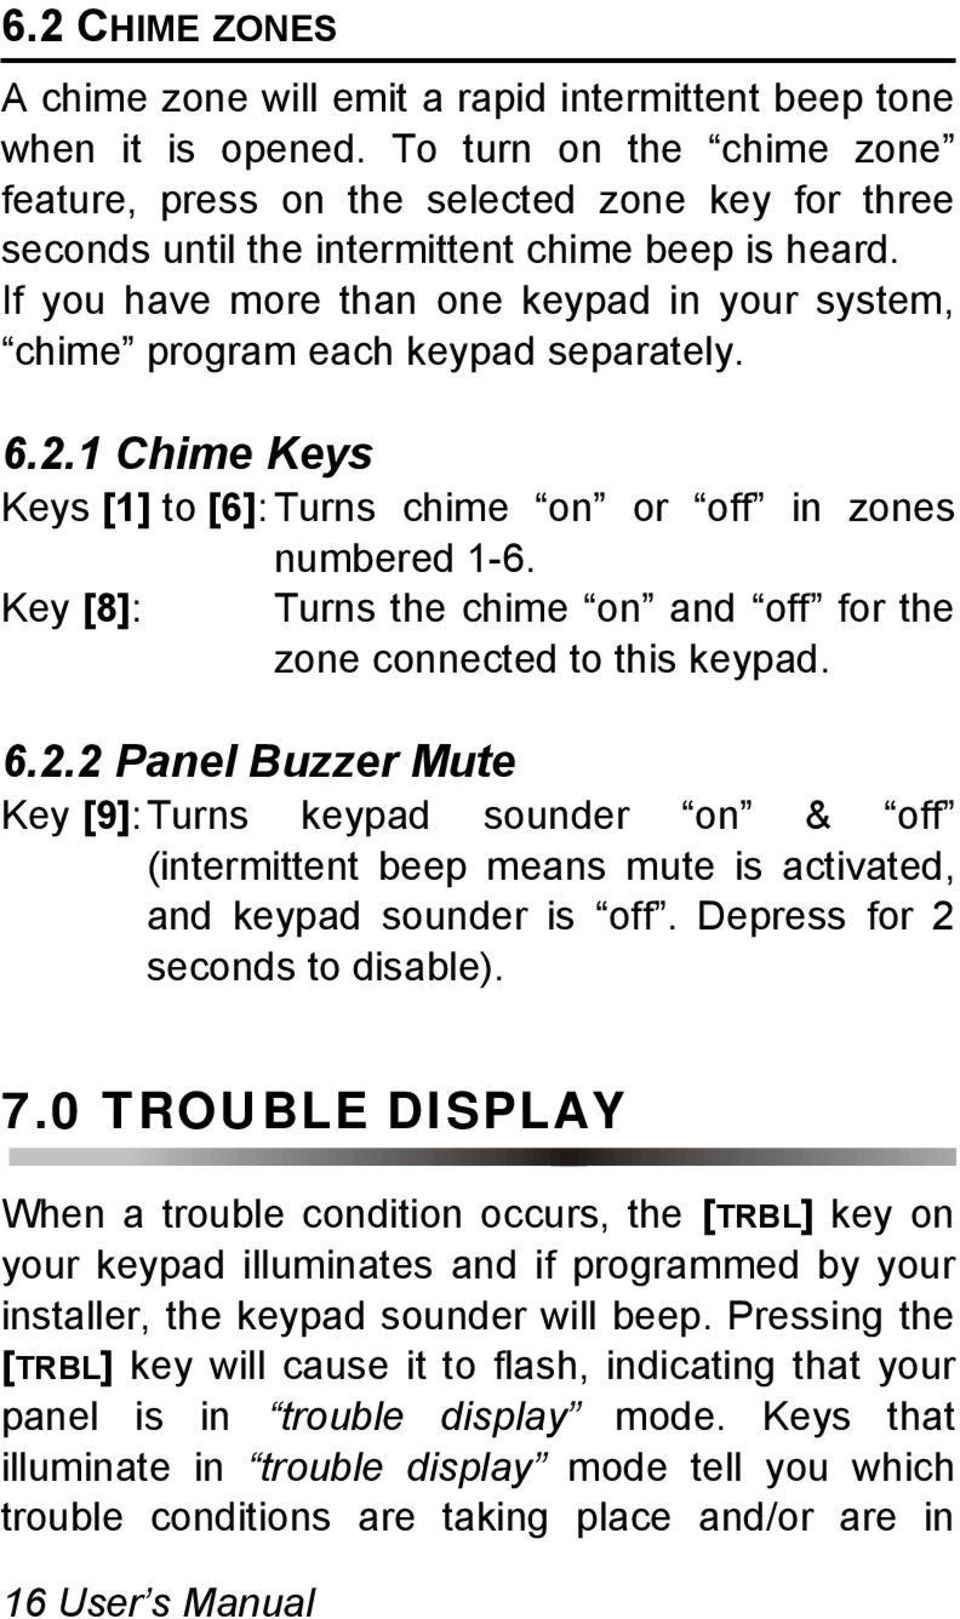 If you have more than one keypad in your system, chime program each keypad separately. 6.2.1 Chime Keys Keys [1] to [6]:Turns chime on or off in zones numbered 1-6.